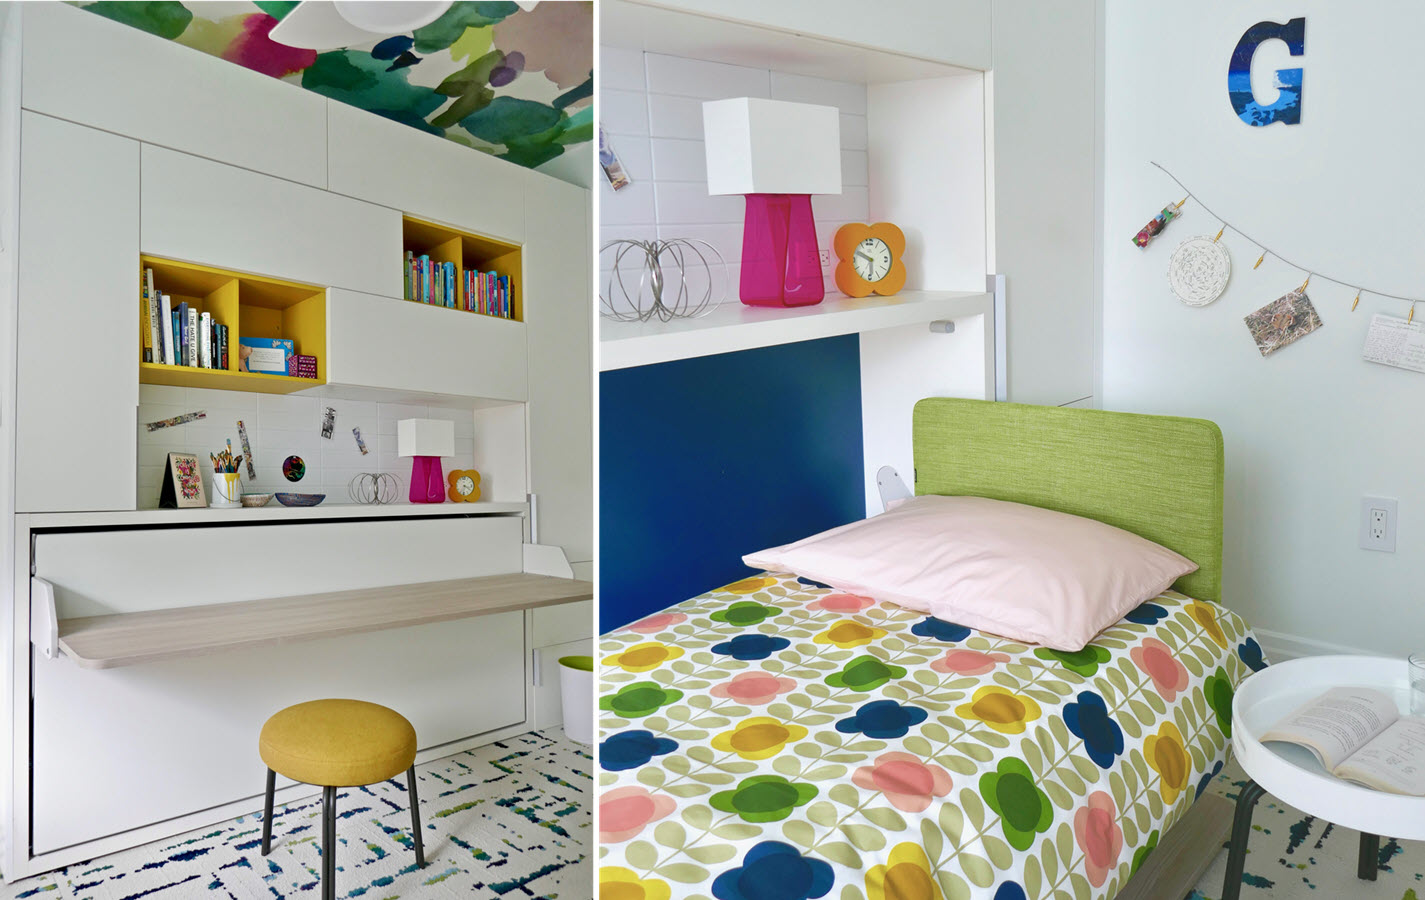 To some, the thought of a maid's room in New York City conjures images of claustrophobic cells. But with bright pops of color, ample light, and a custom, space-saving furniture ensemble, this 7x12' bedroom sheds that old convention, functioning instead as a creative retreat for a pre-teen artist to grow into her own.